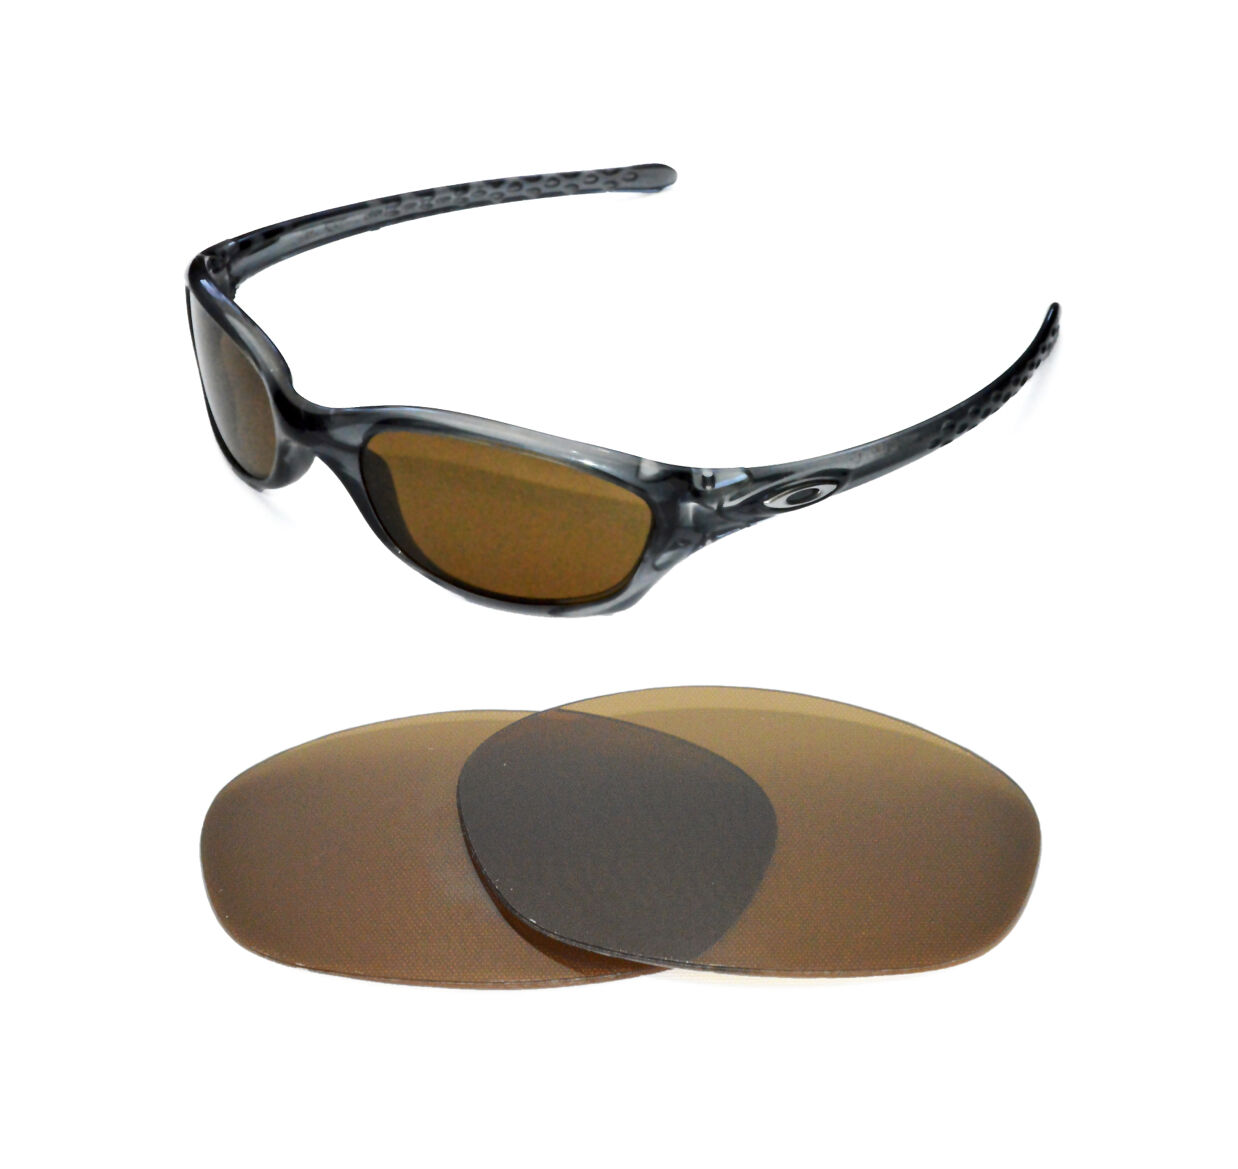 4d7deed9d5 Details about NEW POLARIZED BRONZE REPLACEMENT LENS FOR OAKLEY FIVES 2.0  SUNGLASSES